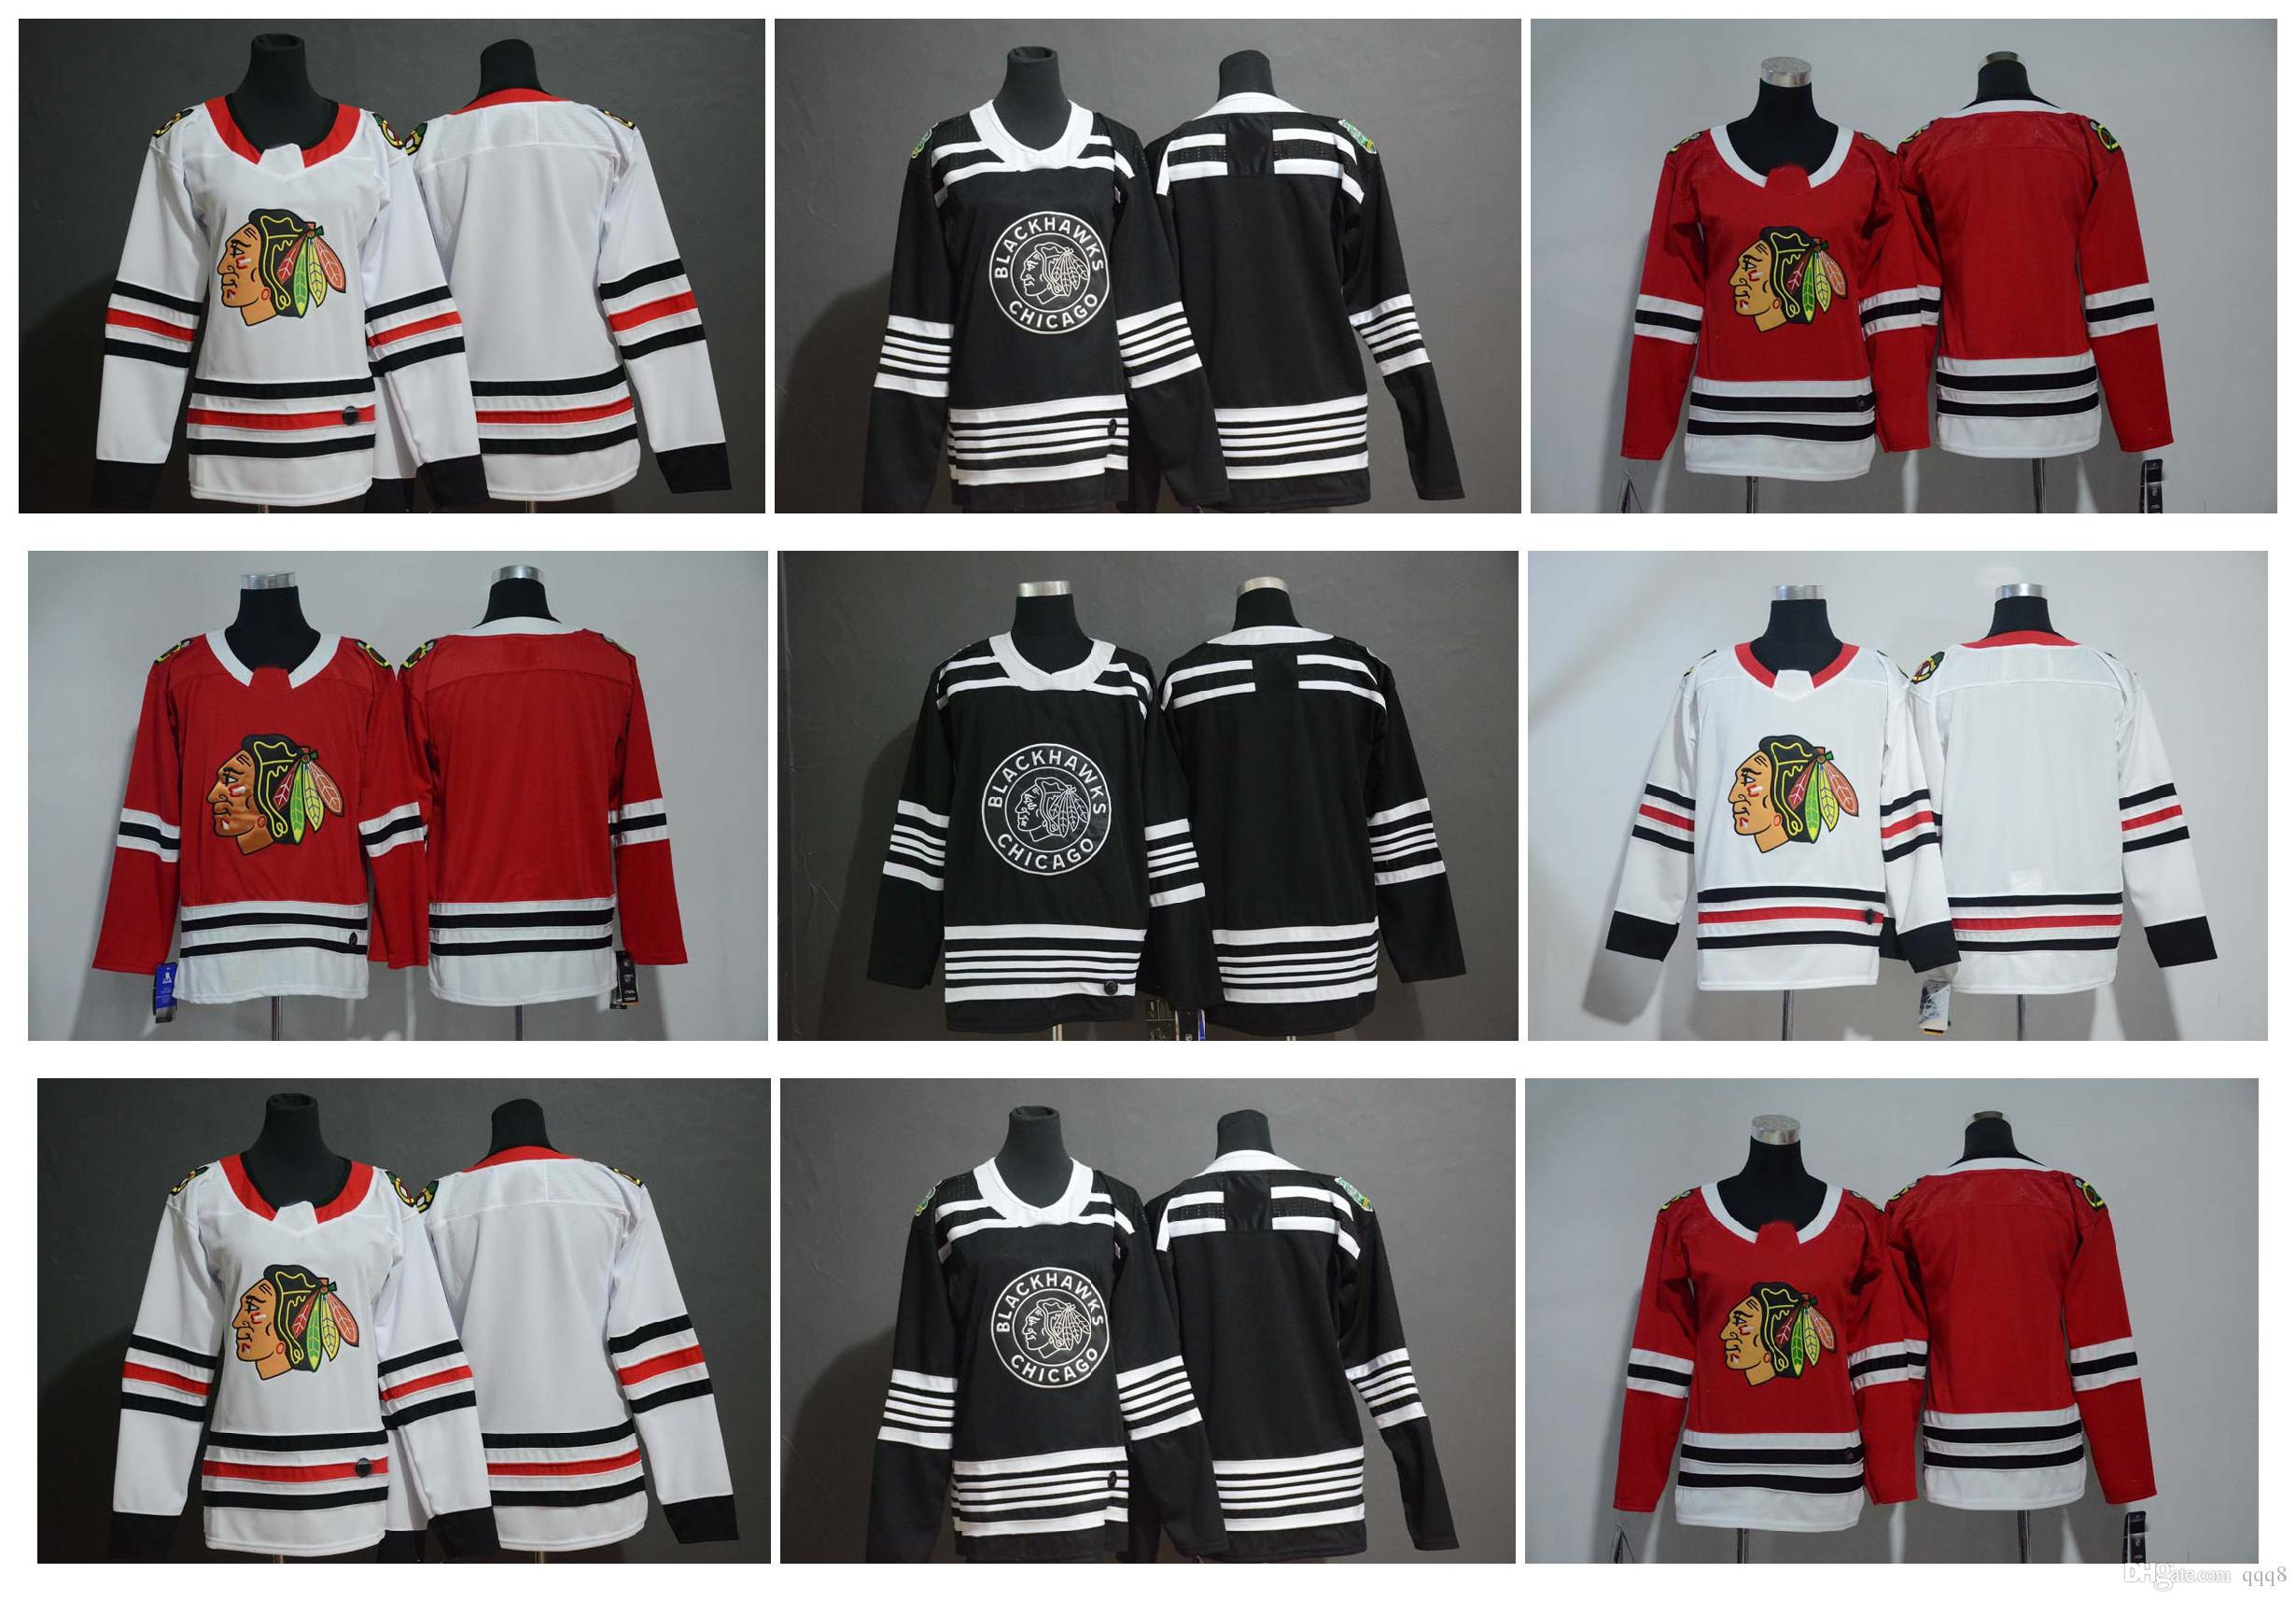 super popular 9337e 6f581 2019 Winter Classic Chicago Blackhawks Jersey Men's Kids Women's Blank No  Name Number Red White Black Stitched Hockey Jersey